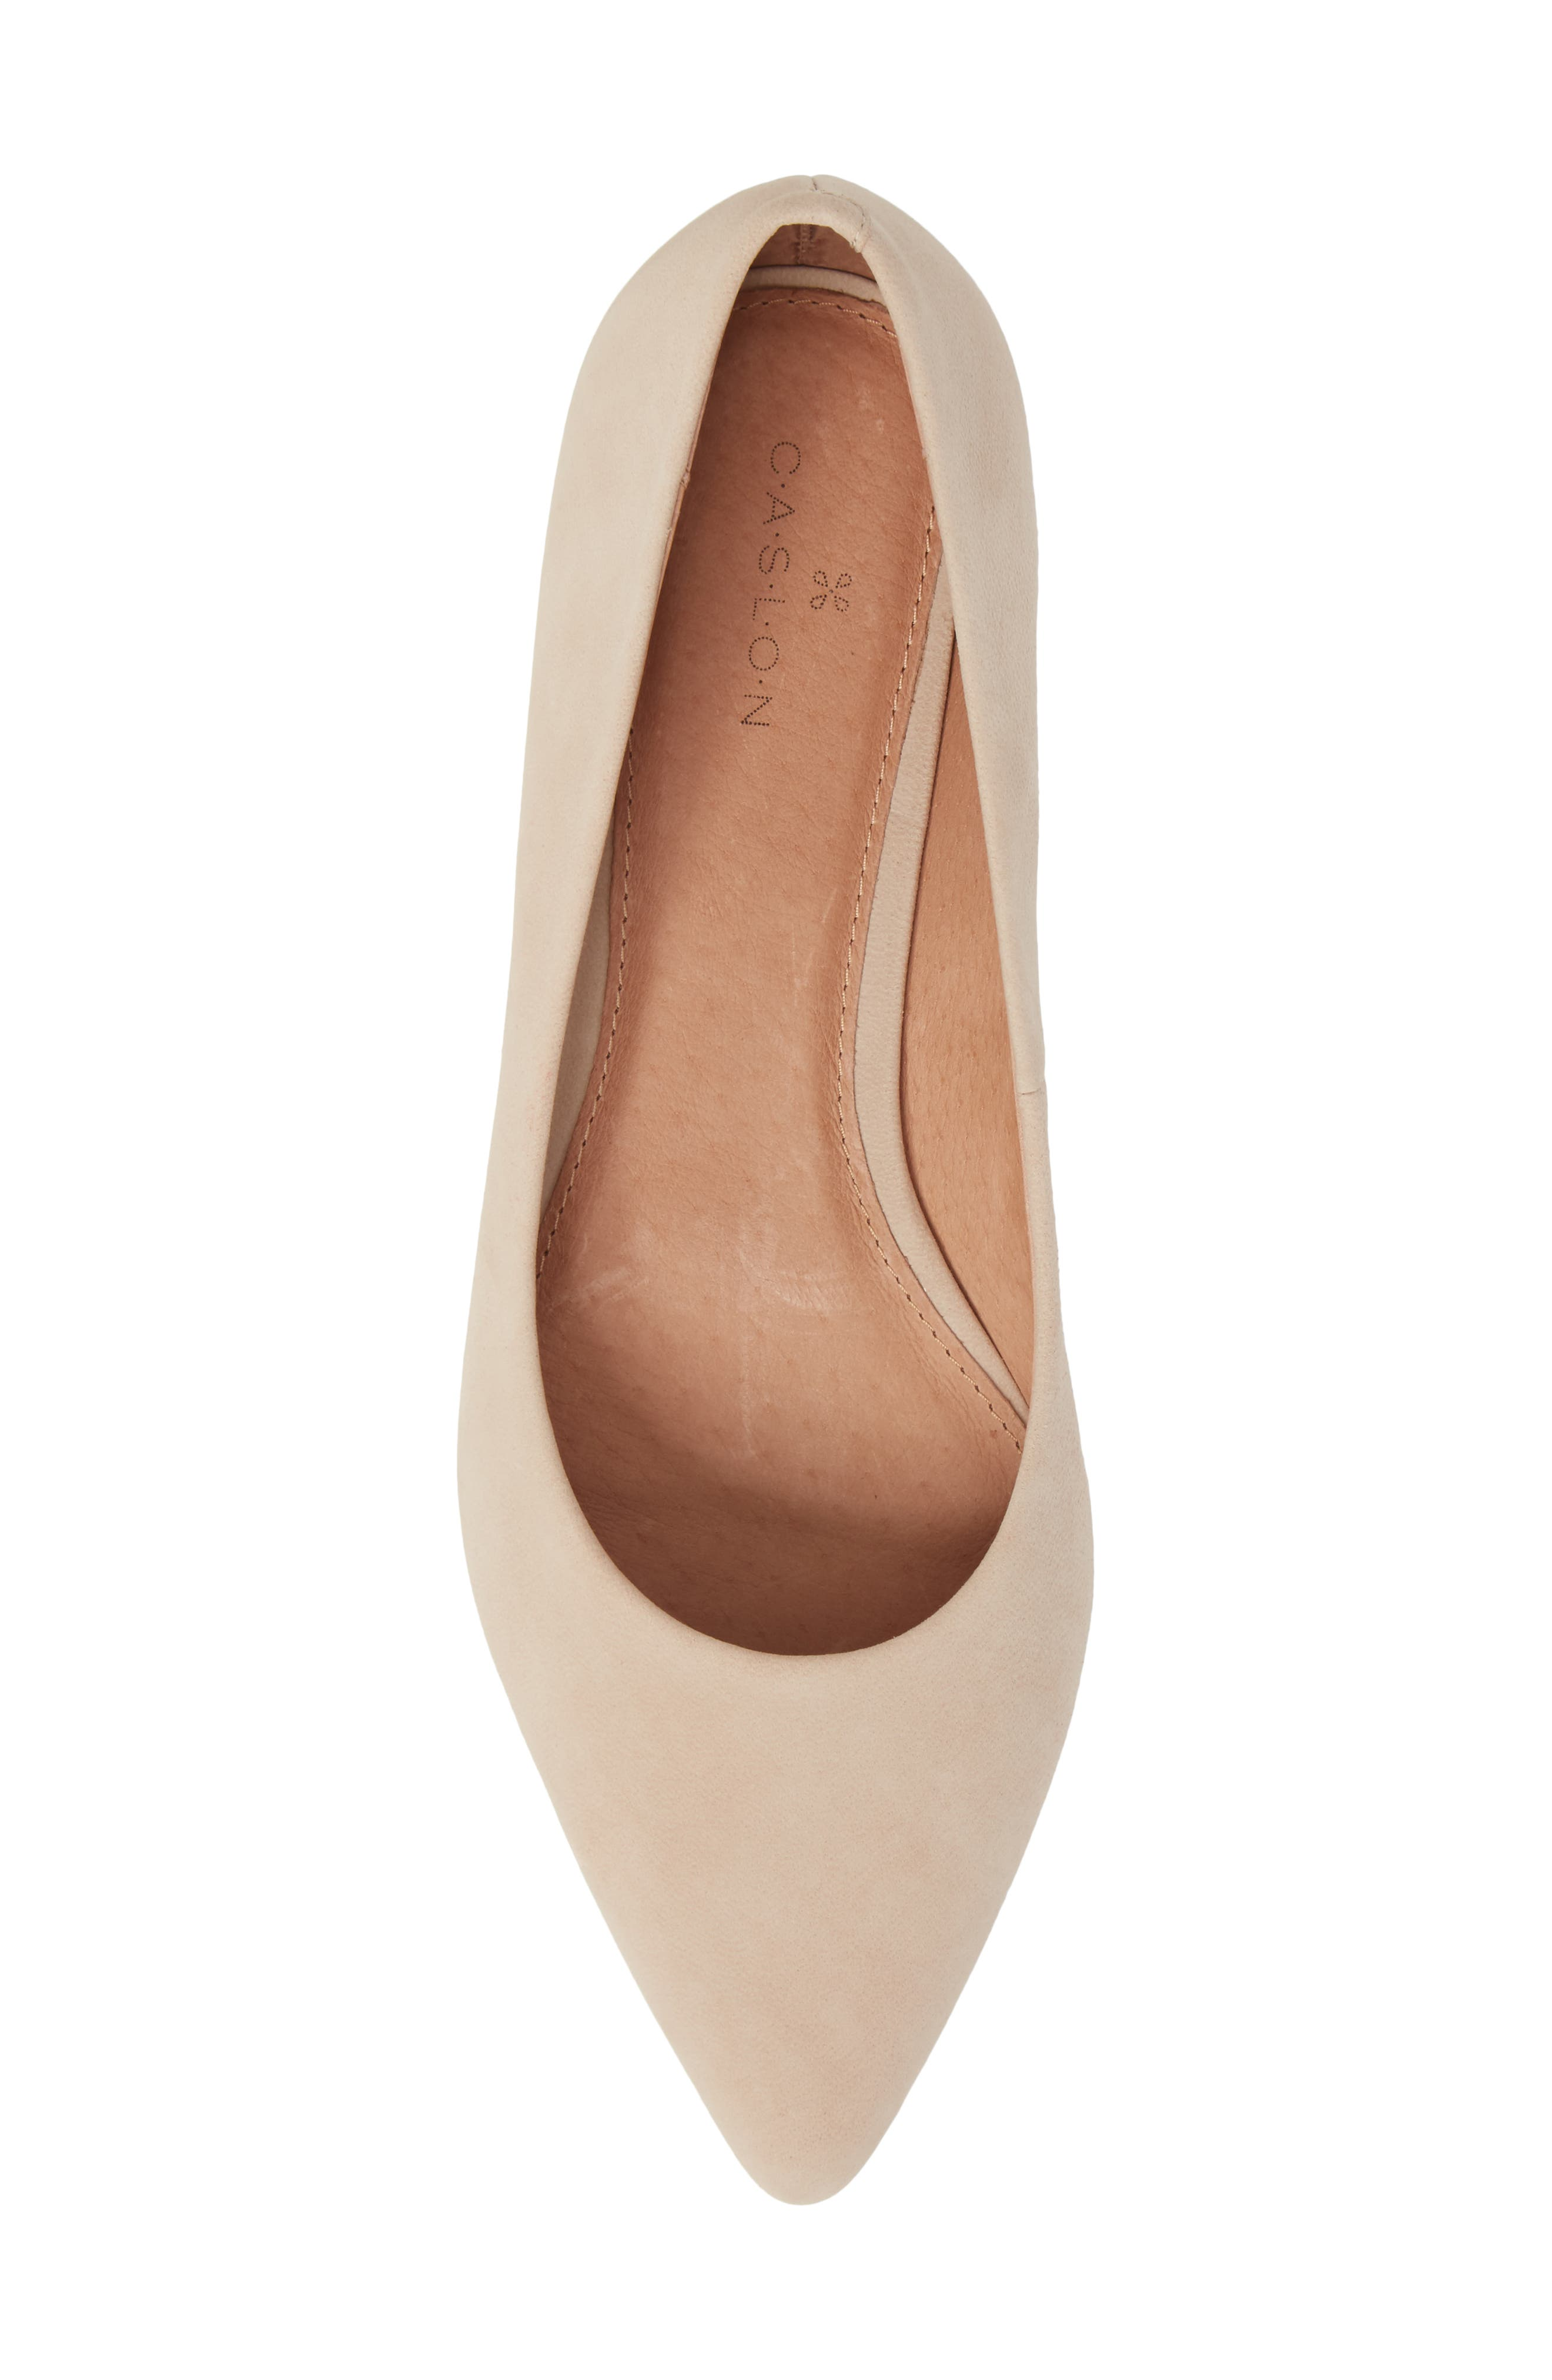 Luna Pointy Toe Flat,                             Alternate thumbnail 5, color,                             Nude Nubuck